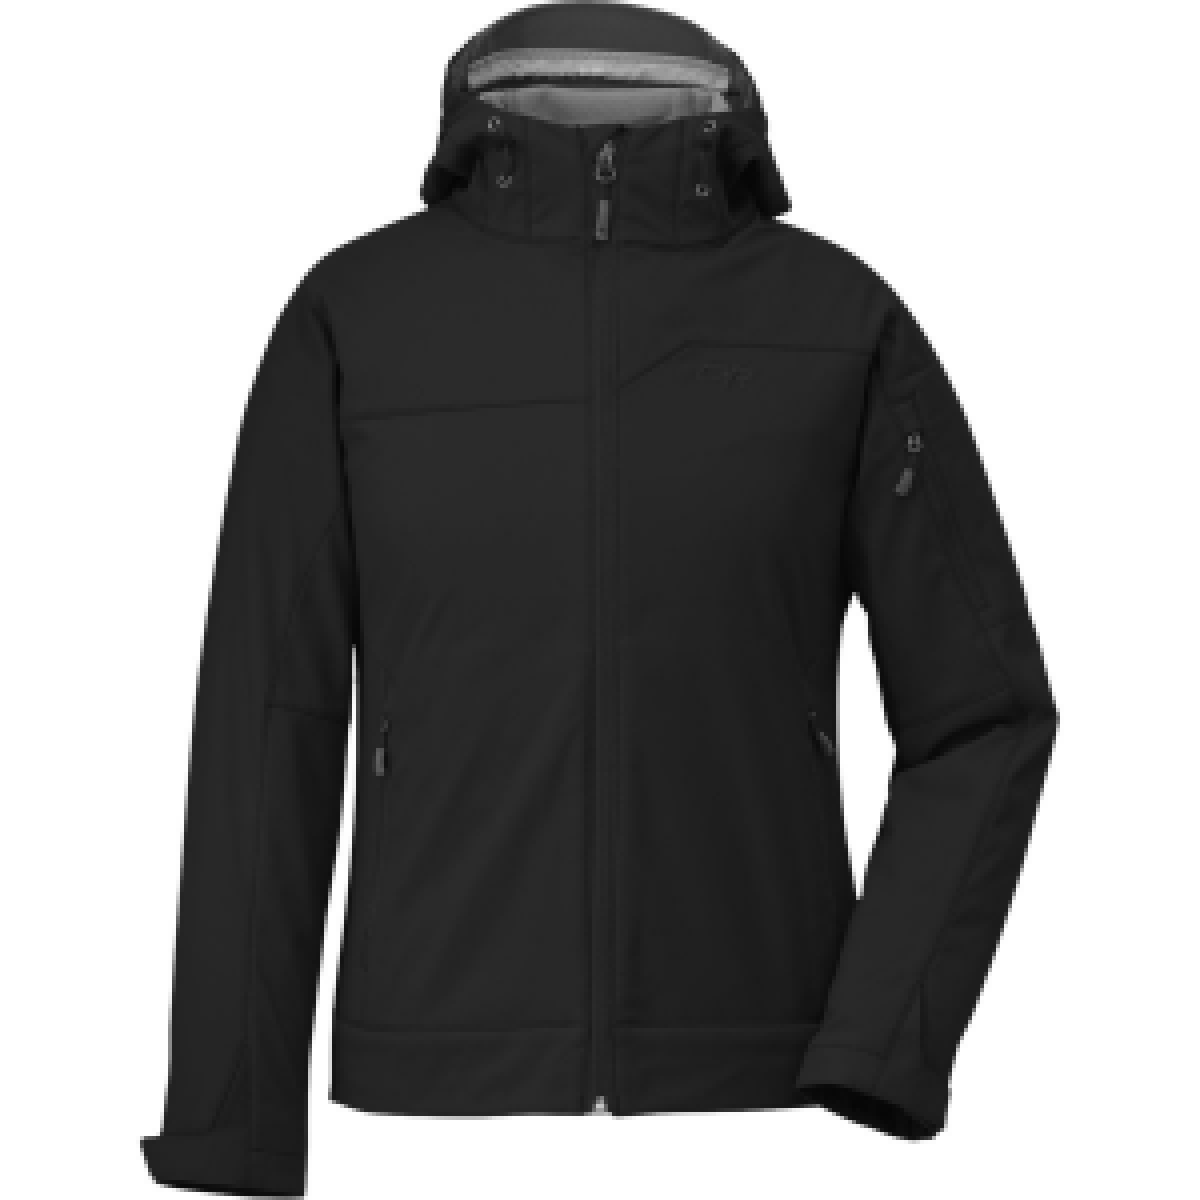 76be27eae9f9  139.95Availability  In stock. The Outdoor Research Women s Transfer Hooded  Softshell Jacket ...